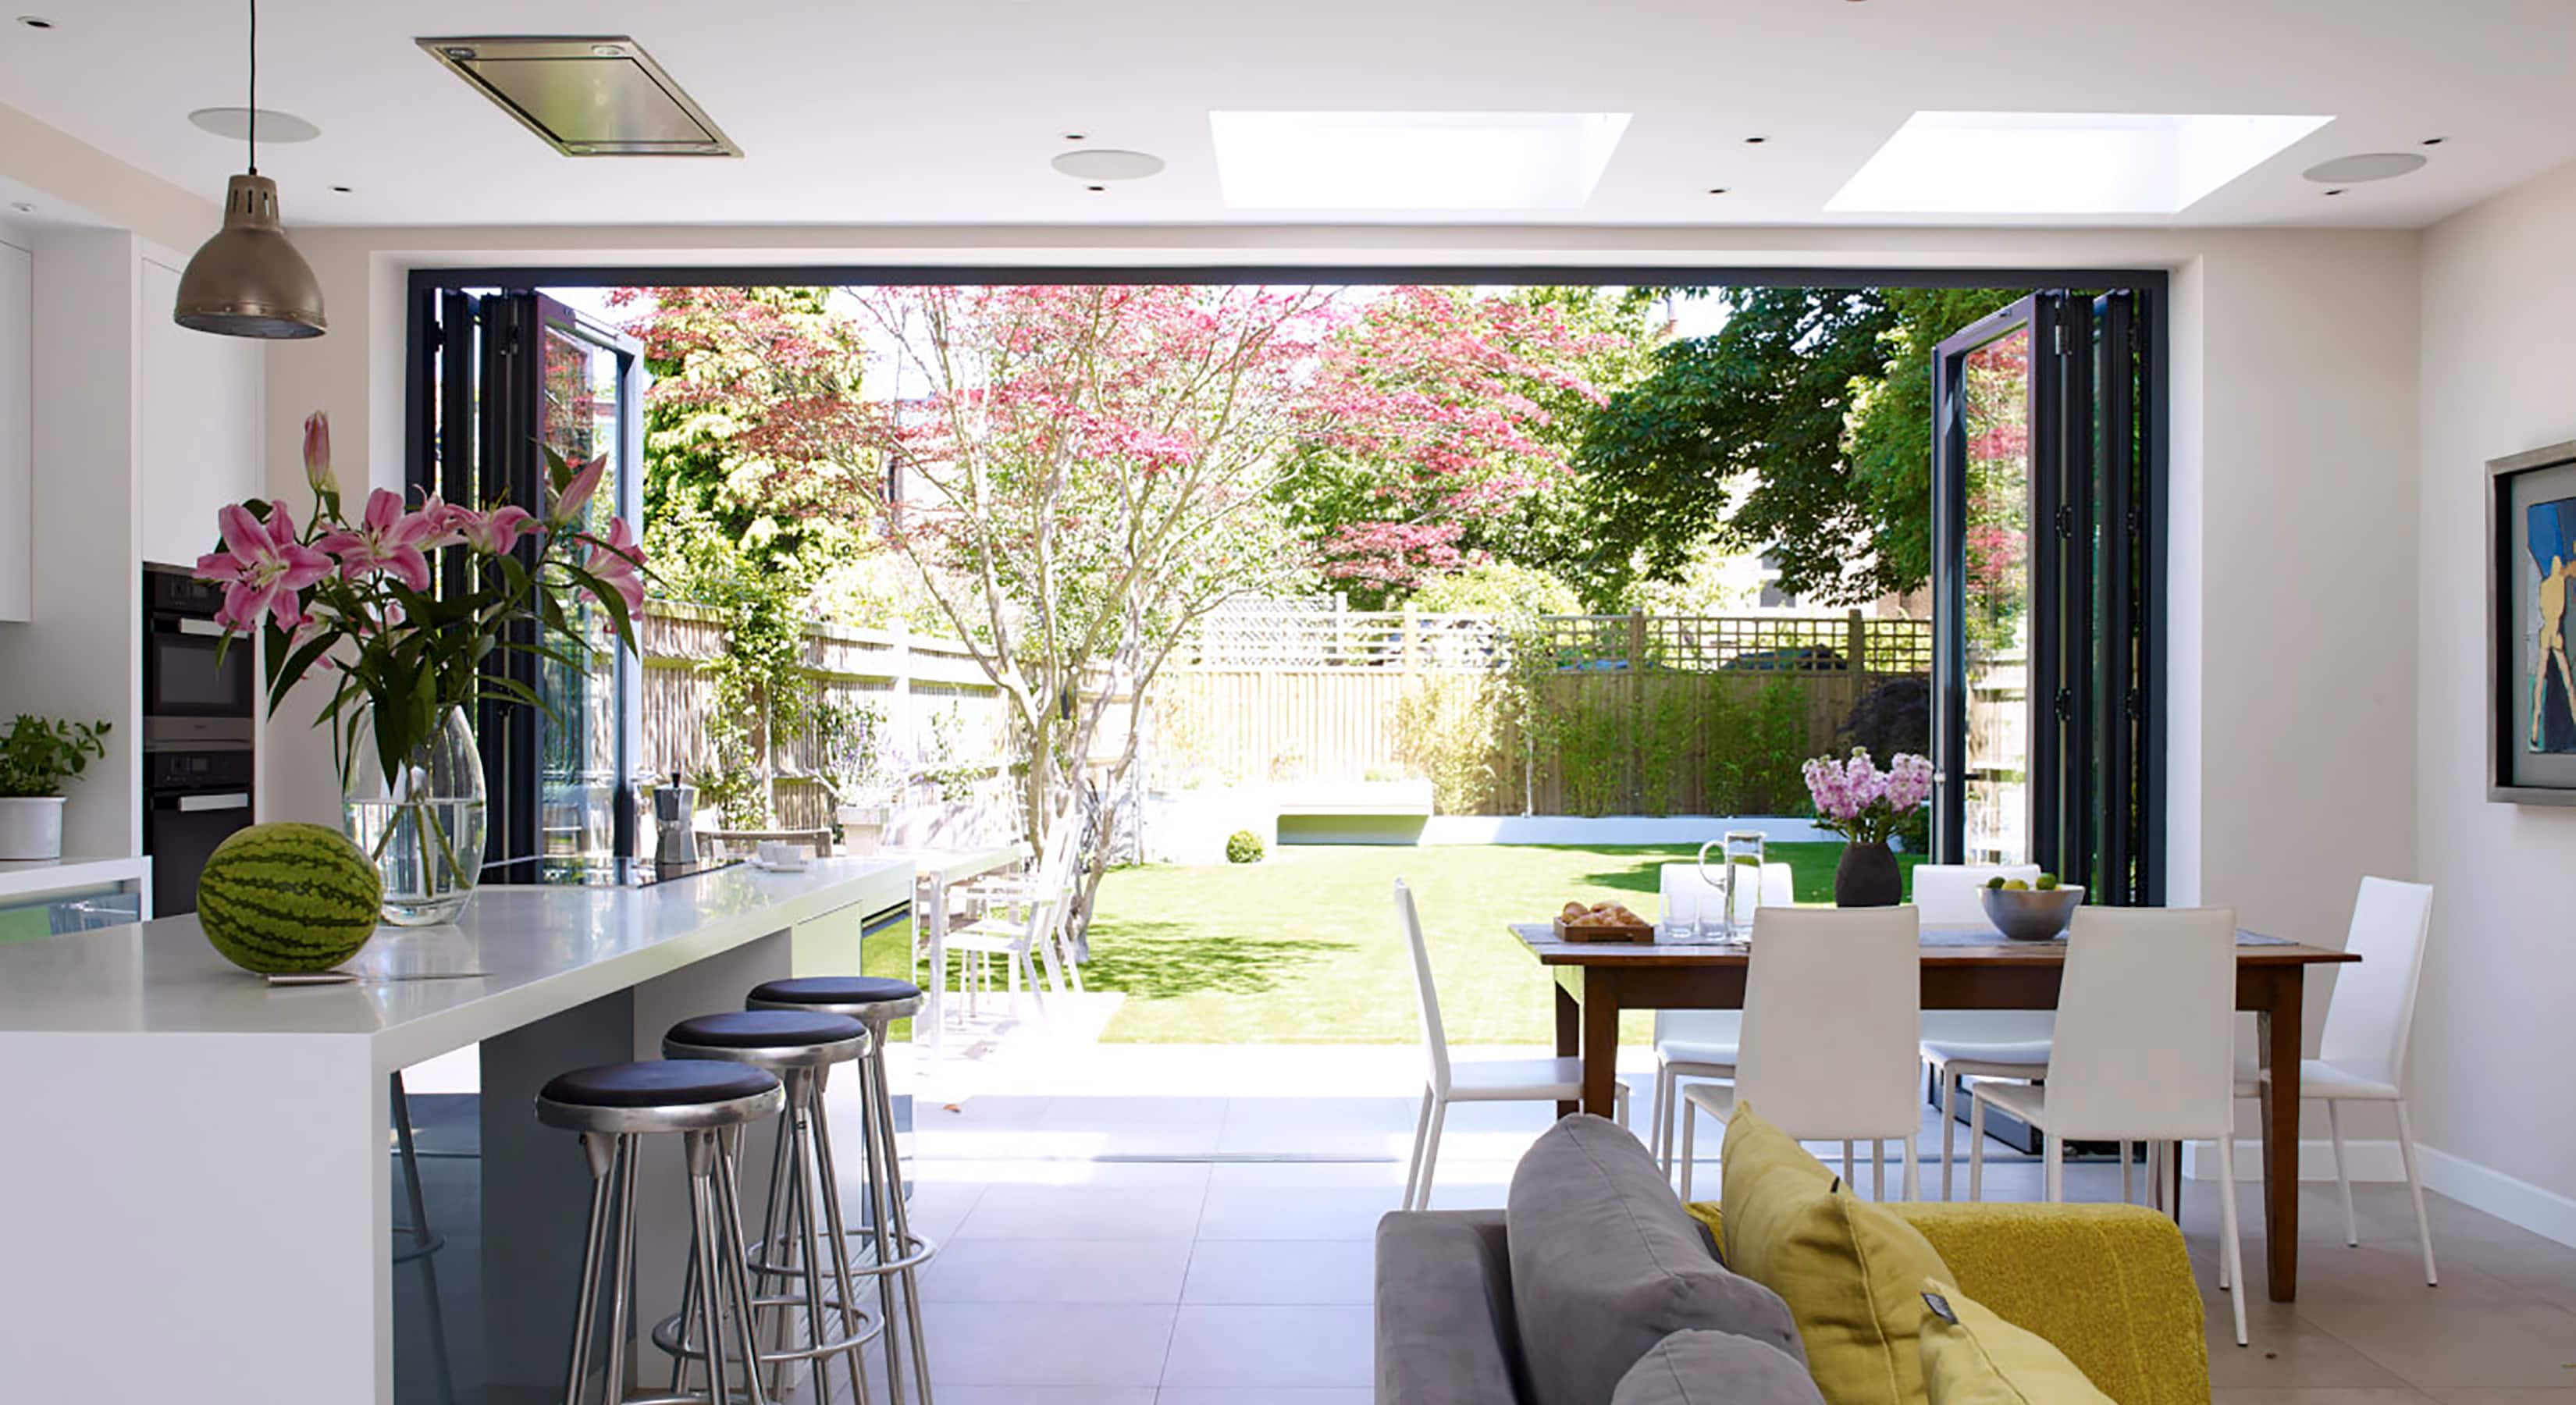 View out to the garden from within a Pike kitchen extension concept